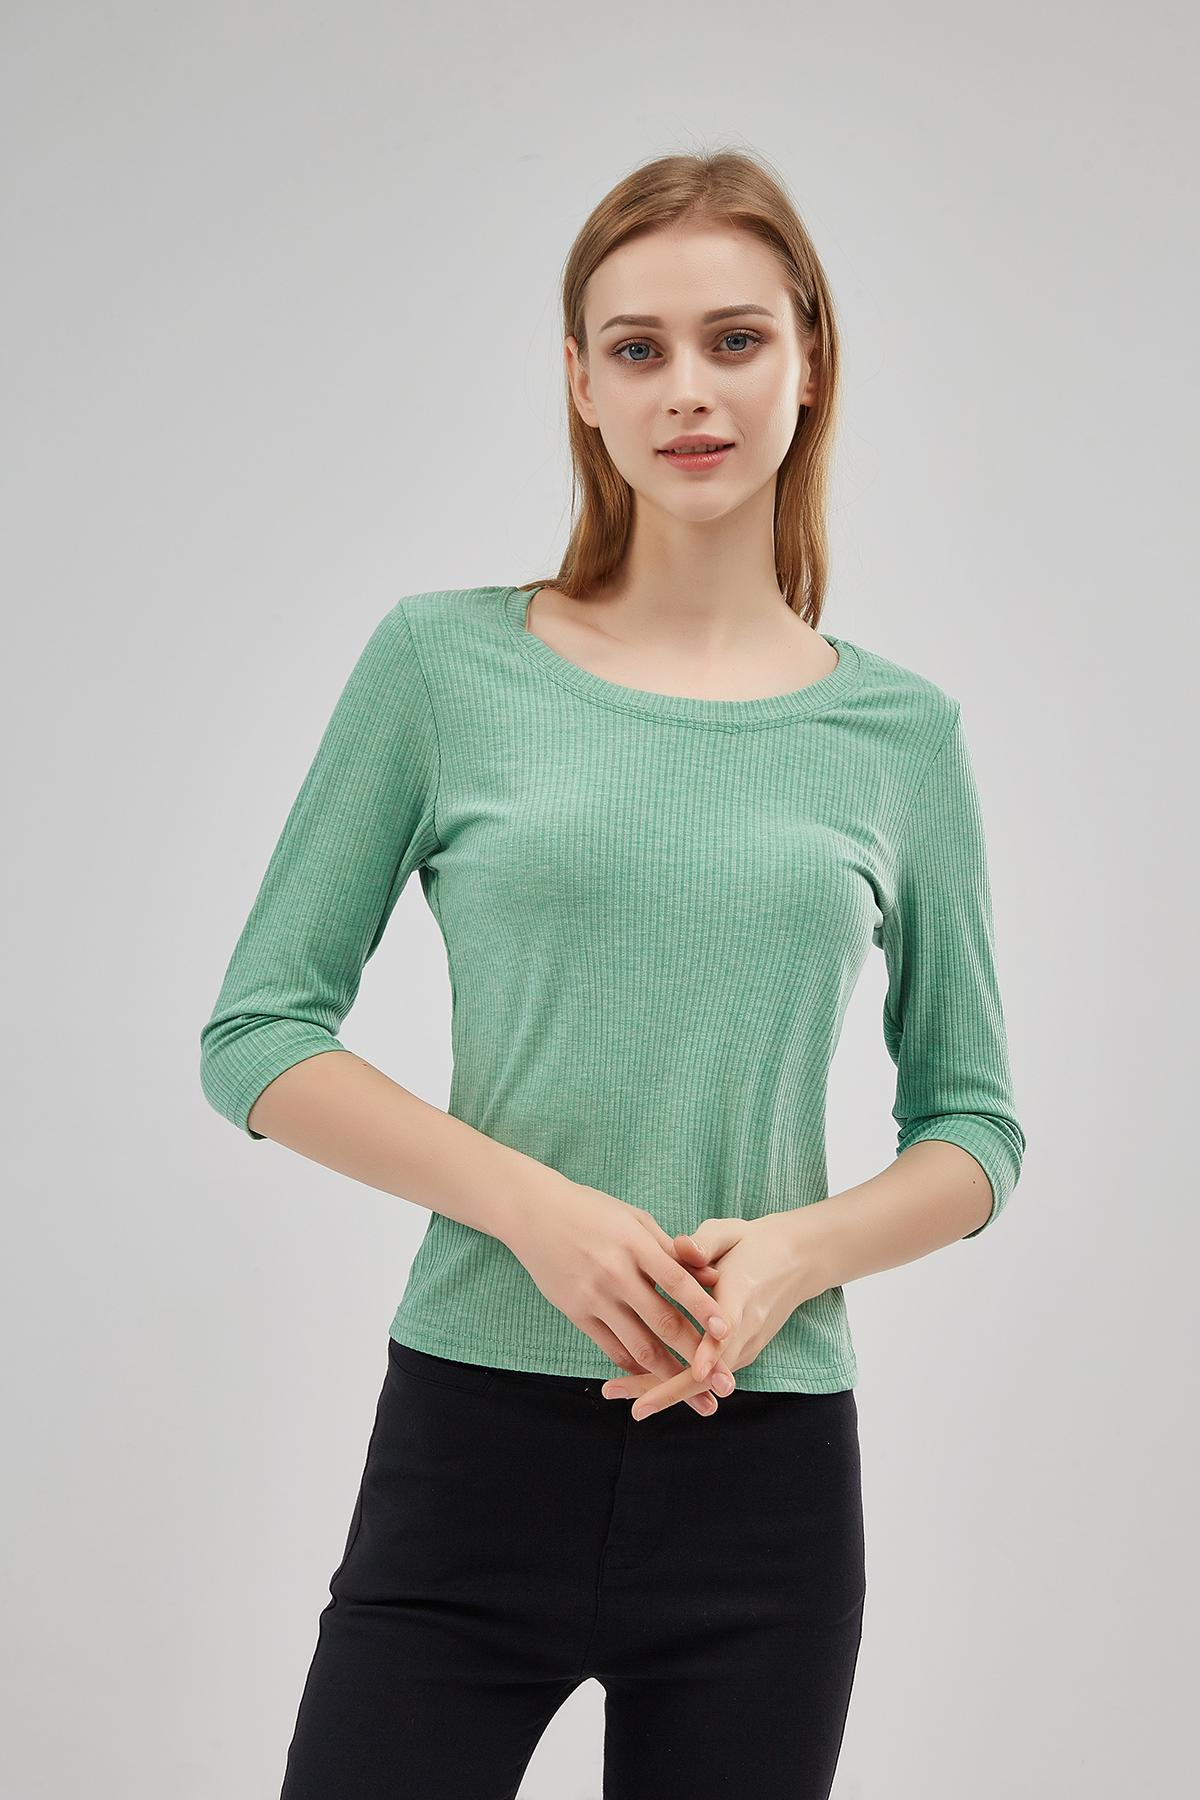 2021 New Women's T-shirt Round Neck Spring and Summer High Elasticity Casual Simple Wild Sleeves Bottoming